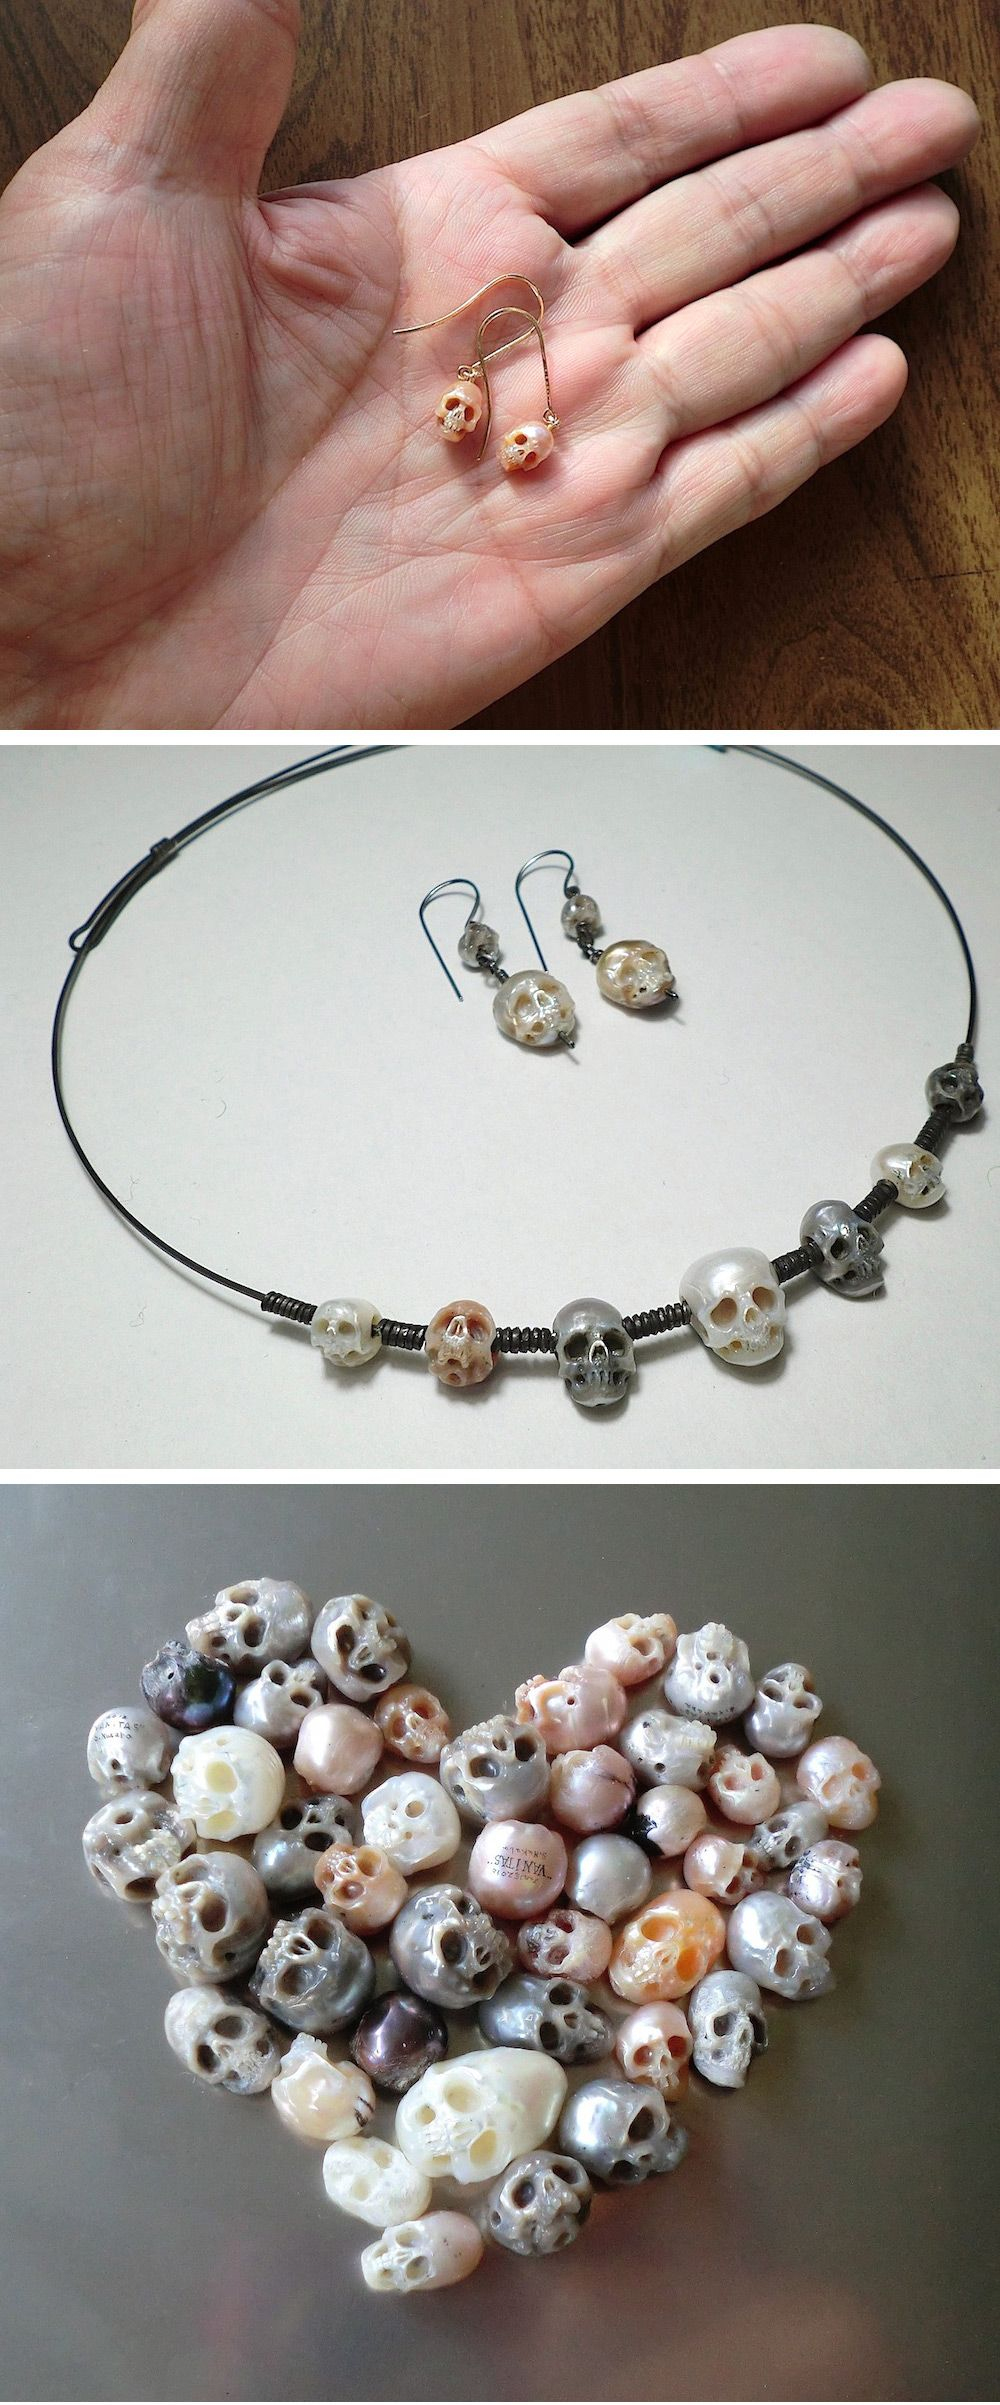 New Miniature Anatomical Sculptures and Jewelry Carved From Pearls by Shinji Nakaba